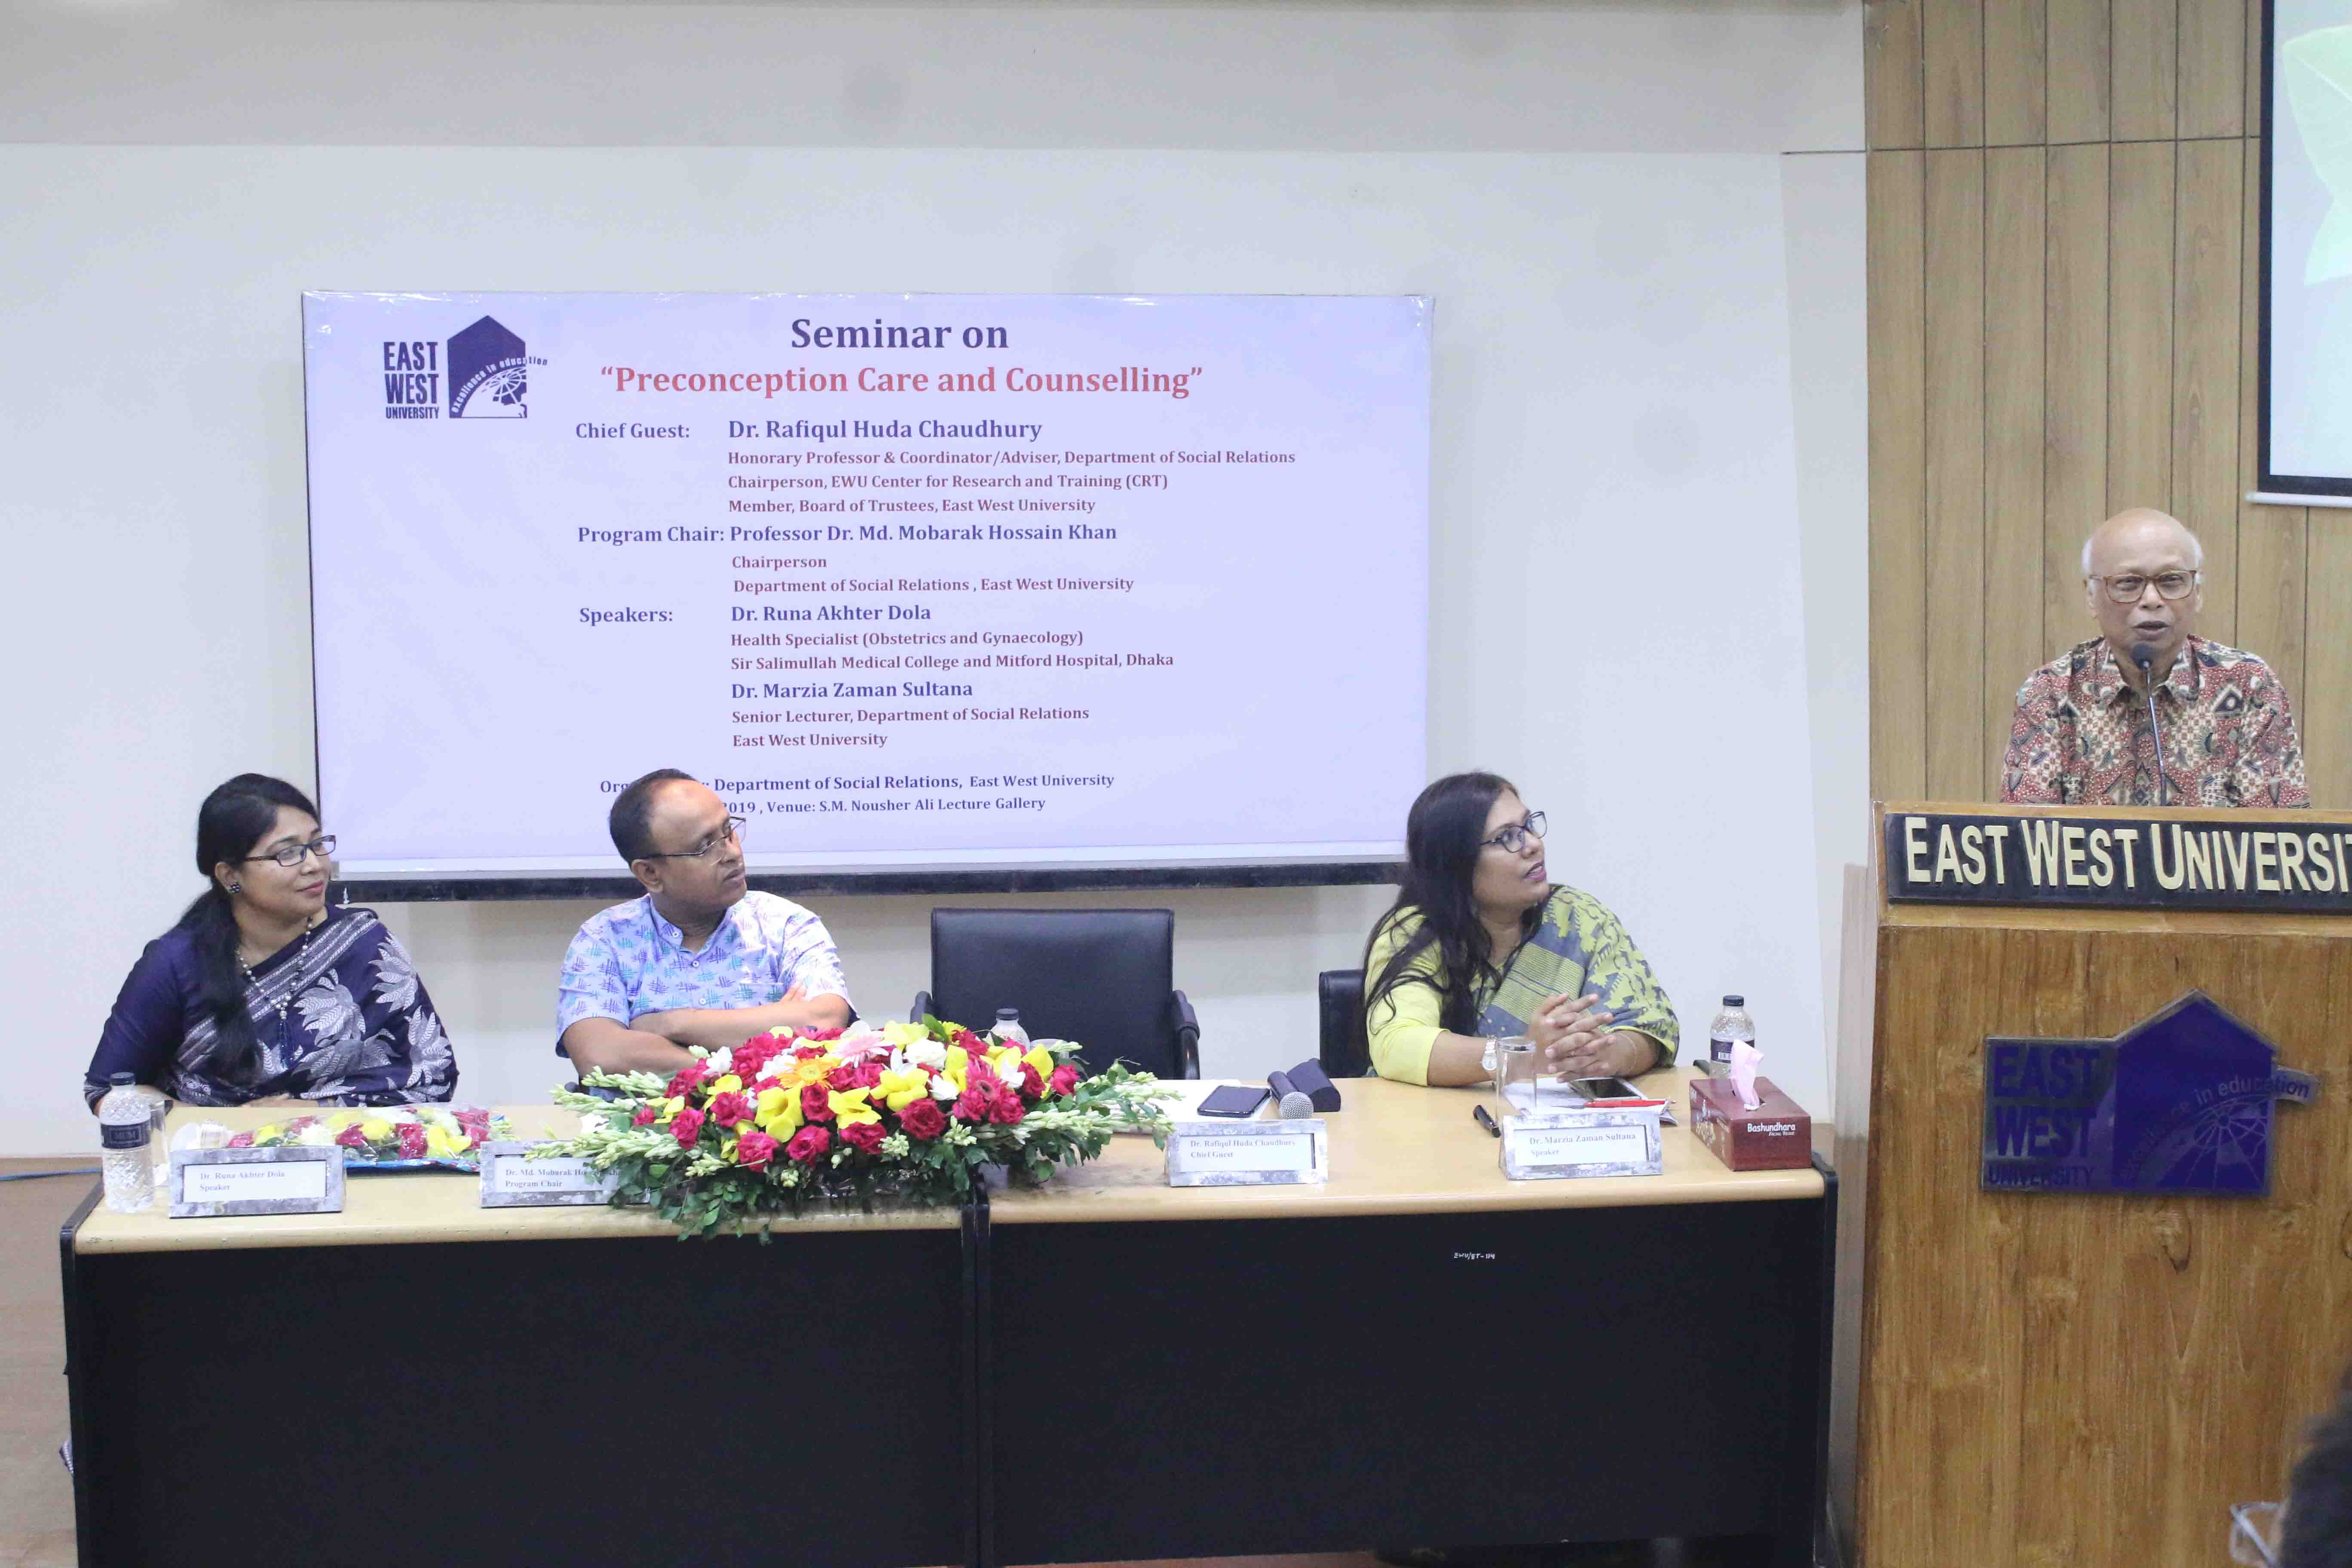 Seminar on Preconception Care and Counselling